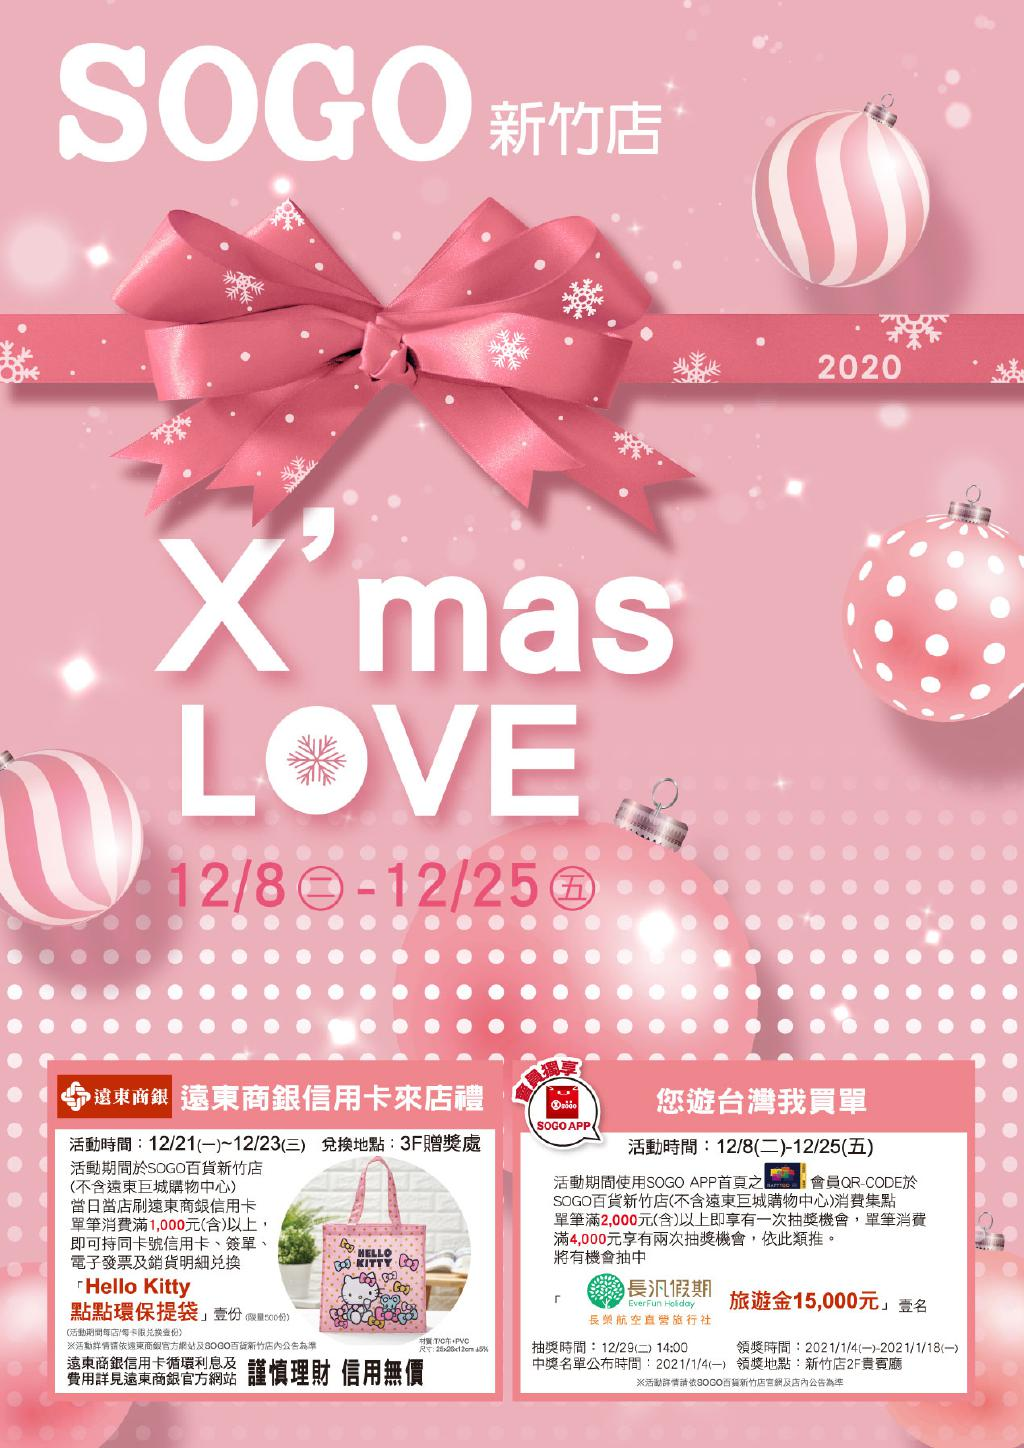 SOGO《新竹店》DM「X'mas LOVE」 【2020/12/25 止】